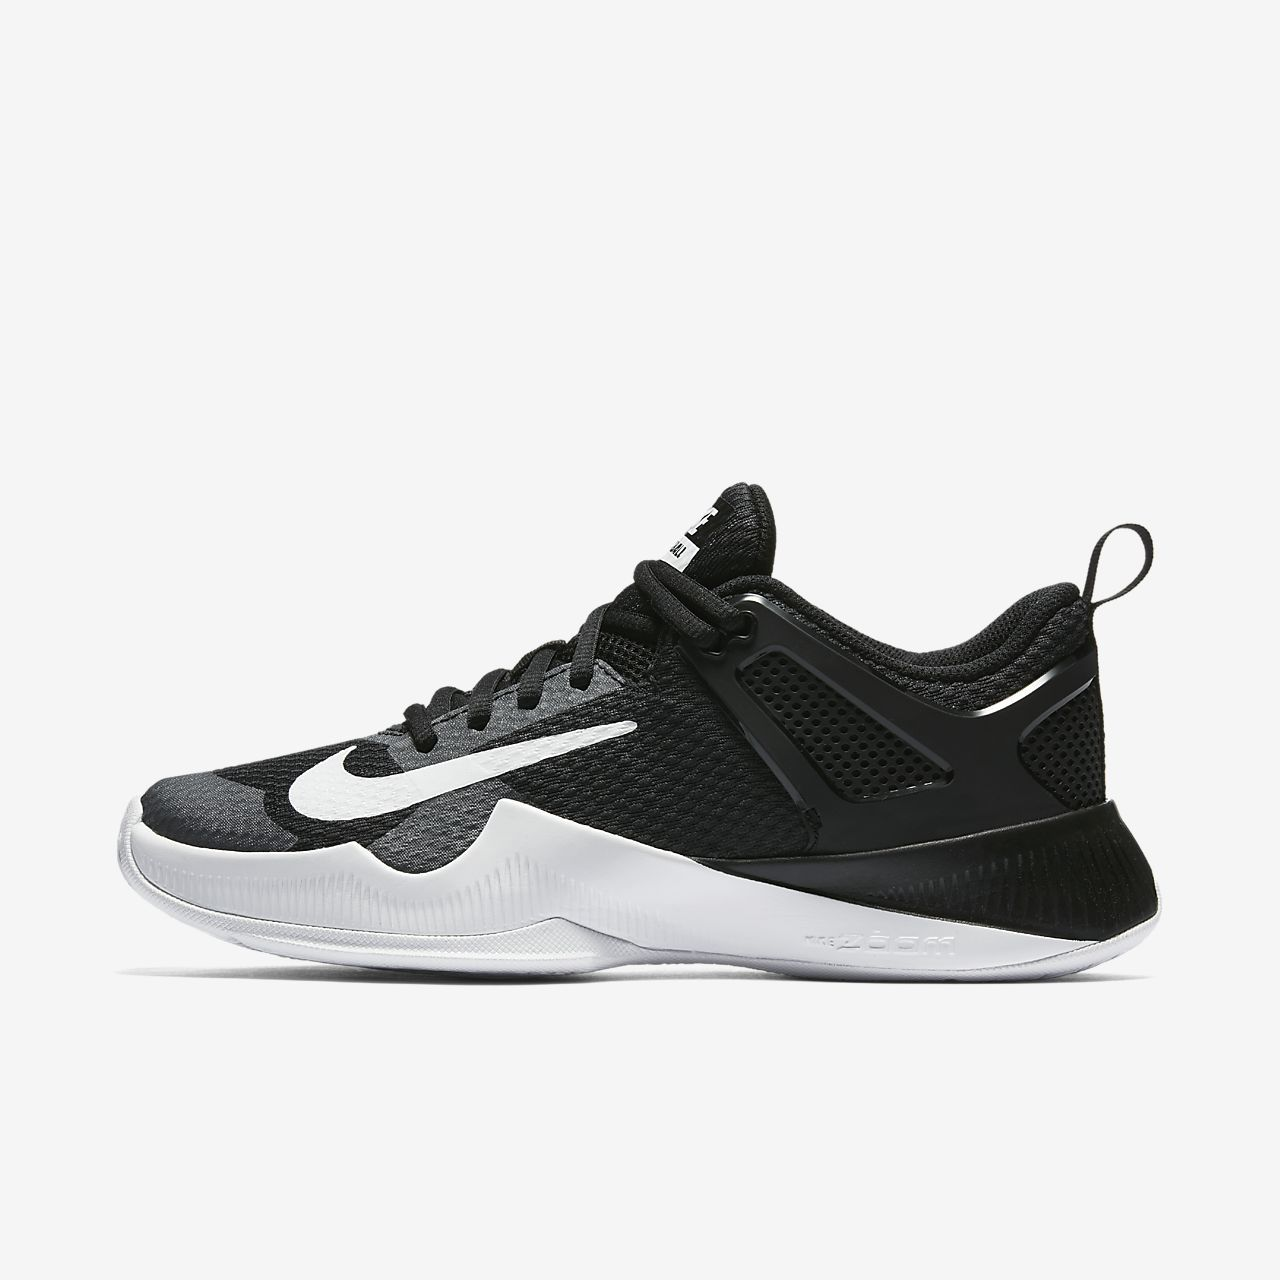 Nike Air Zoom Hyperace Women S Volleyball Shoe Nike Volleyball Shoes Volleyball Shoes Volleyball Sneakers